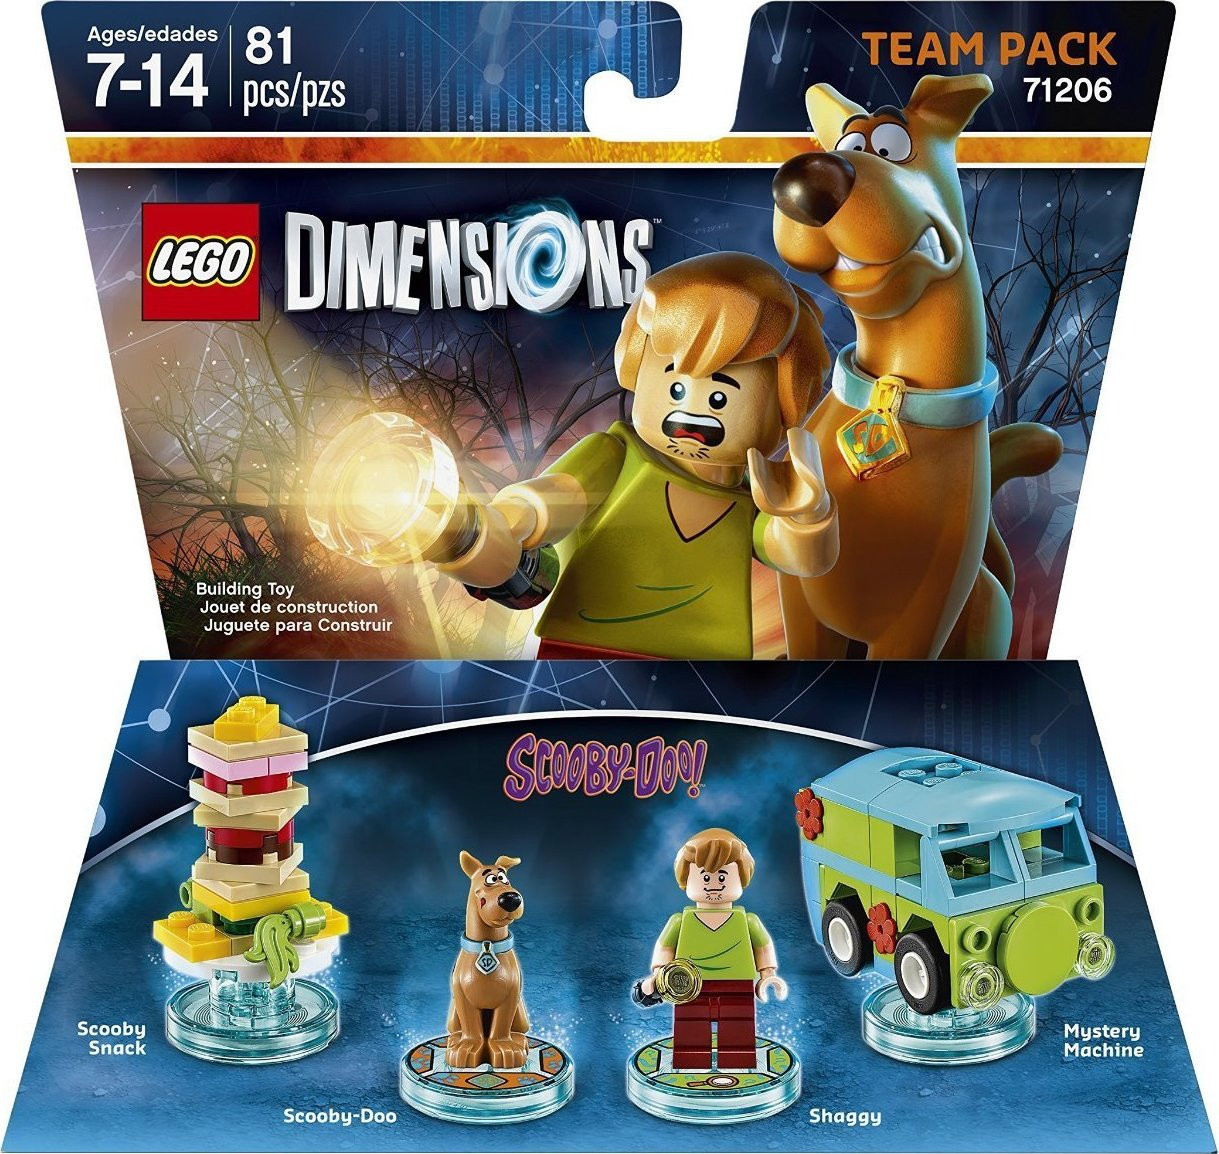 71206 Lego Dimensions Scooby-Doo (Team Pack)